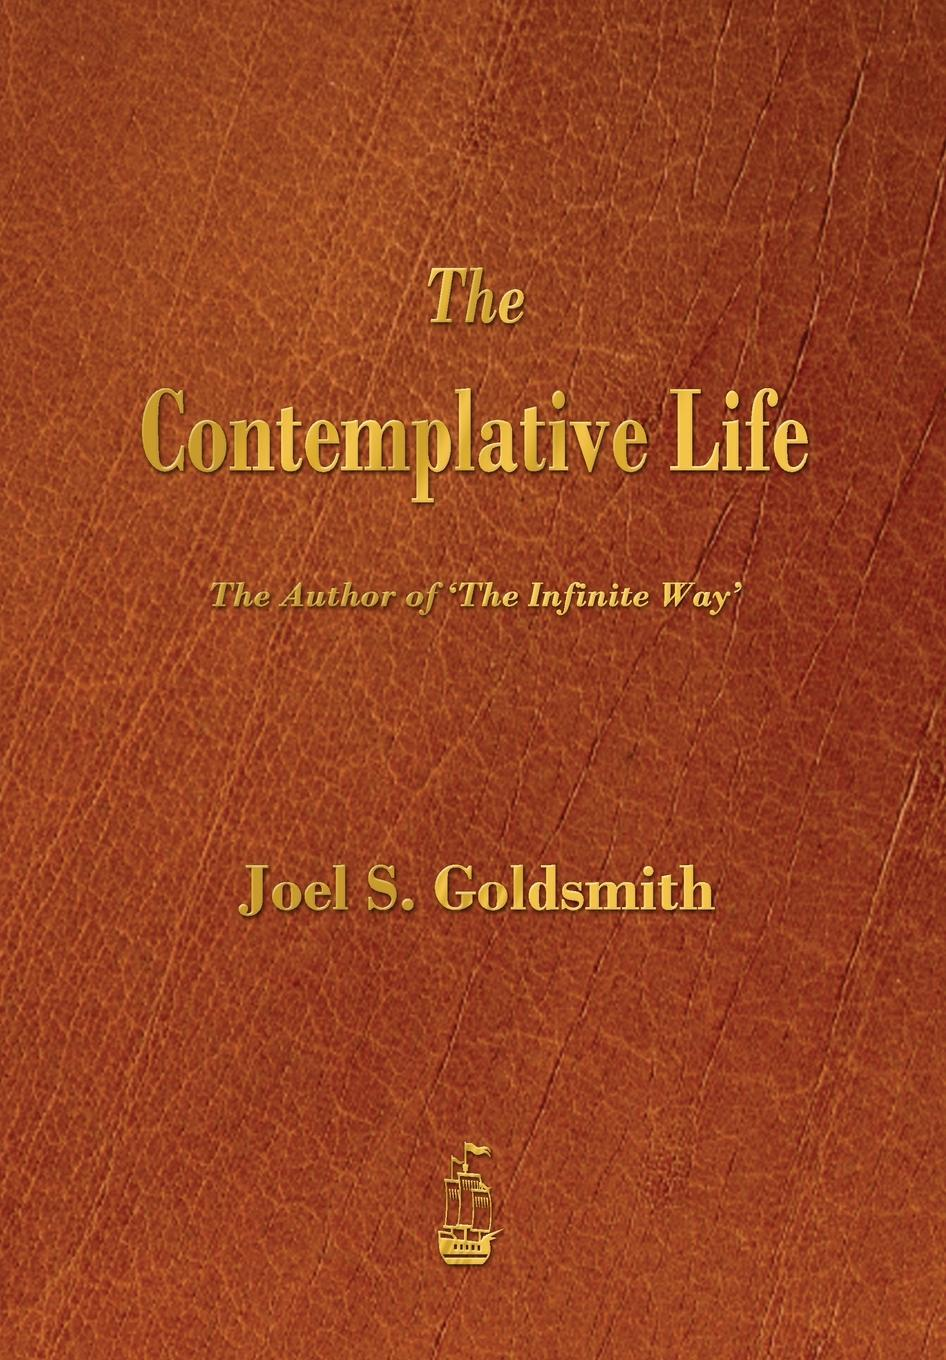 Joel S. Goldsmith The Contemplative Life ingrid weaver eye of the beholder